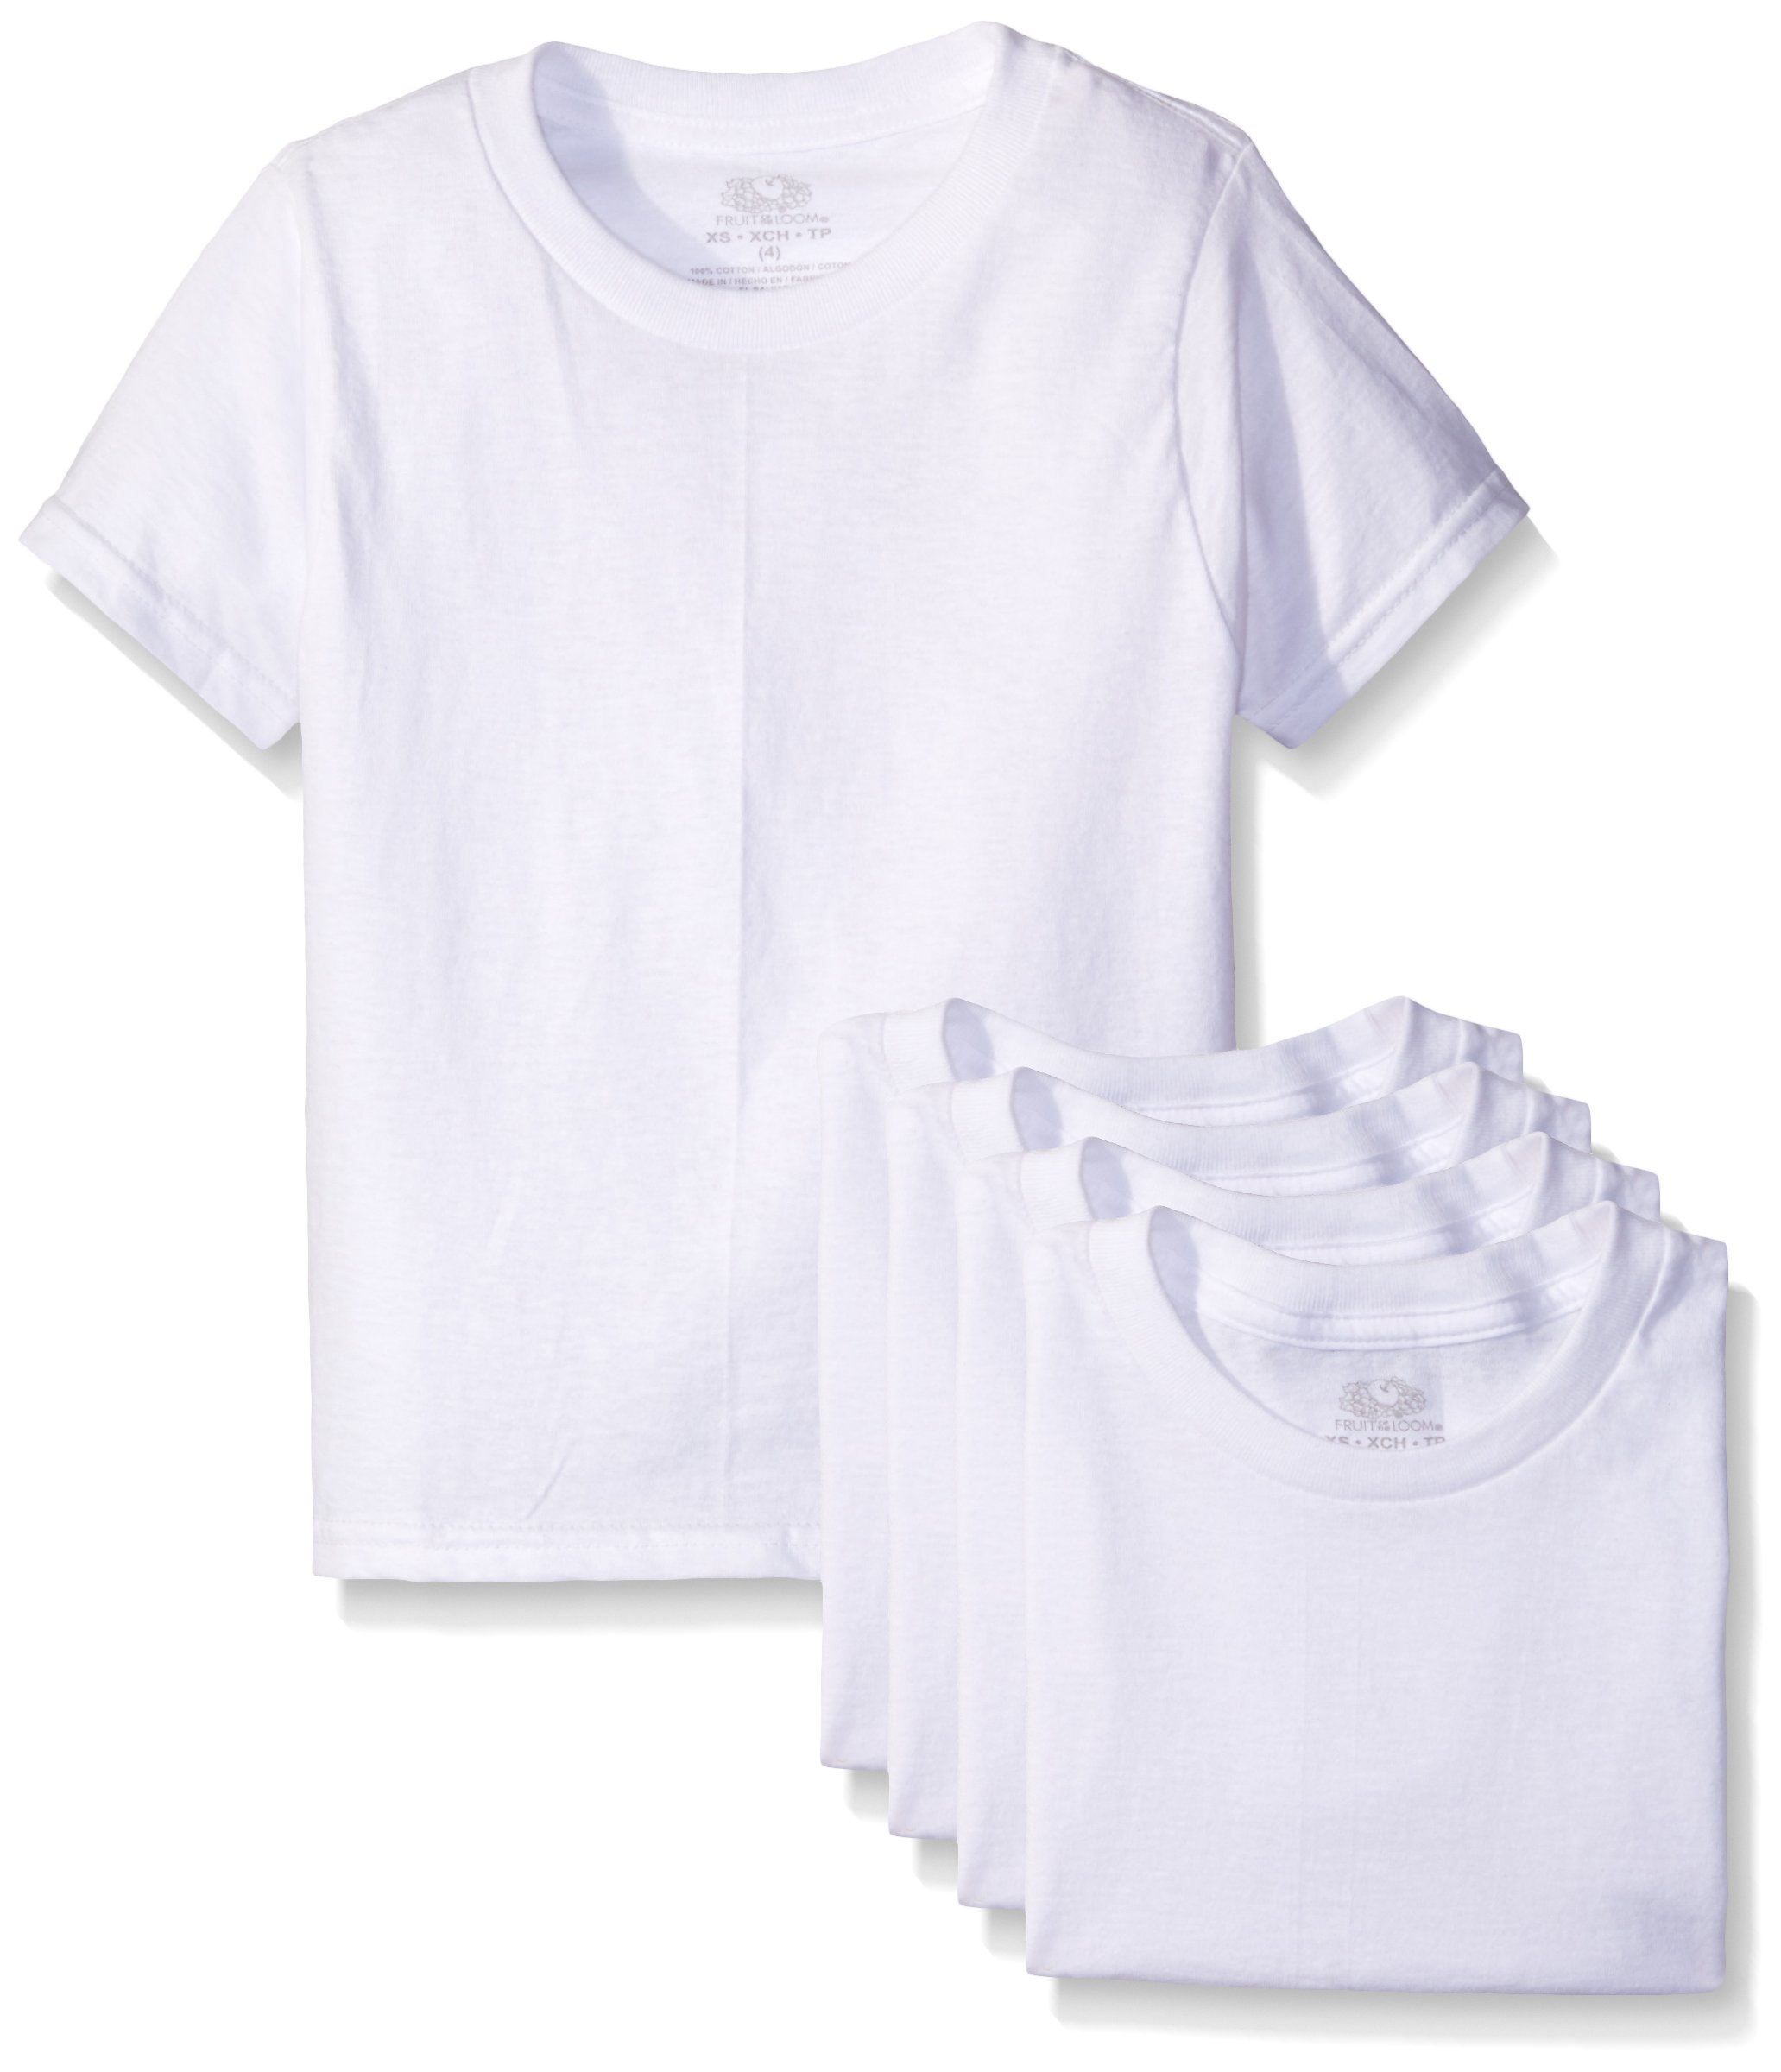 Fruit of the Loom Little Boys Crew Tee Five-Pack (Pack of 5)